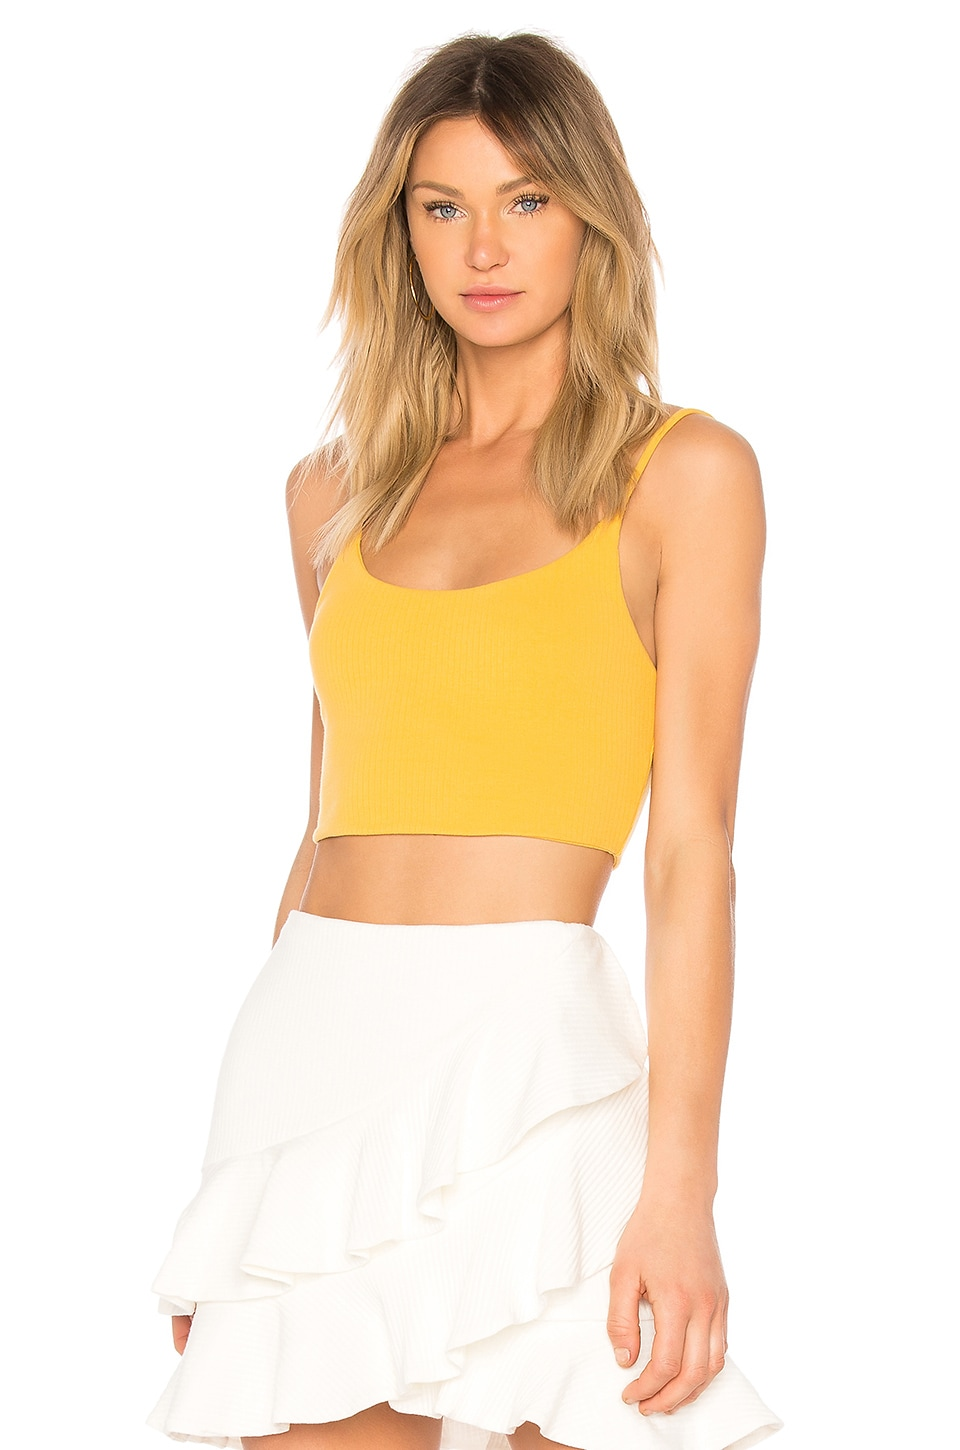 Privacy Please Privett Top in Marigold